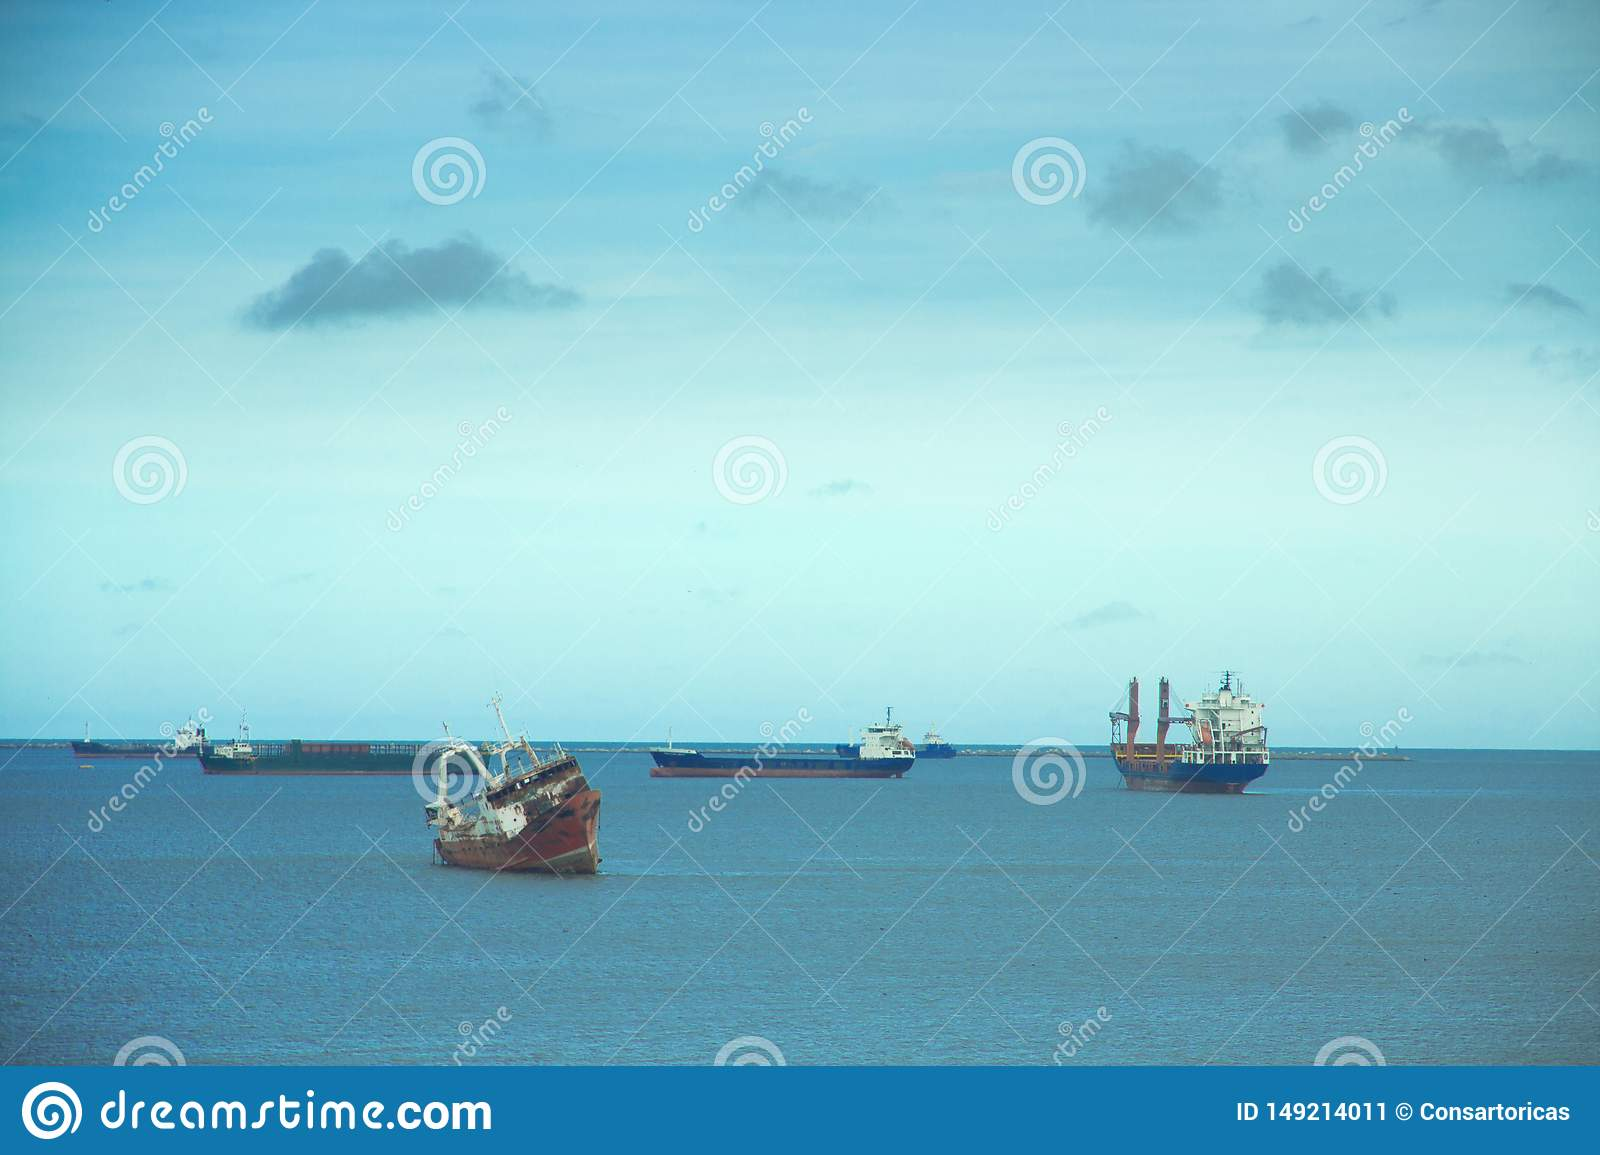 Boats on the sea with a big sky on them